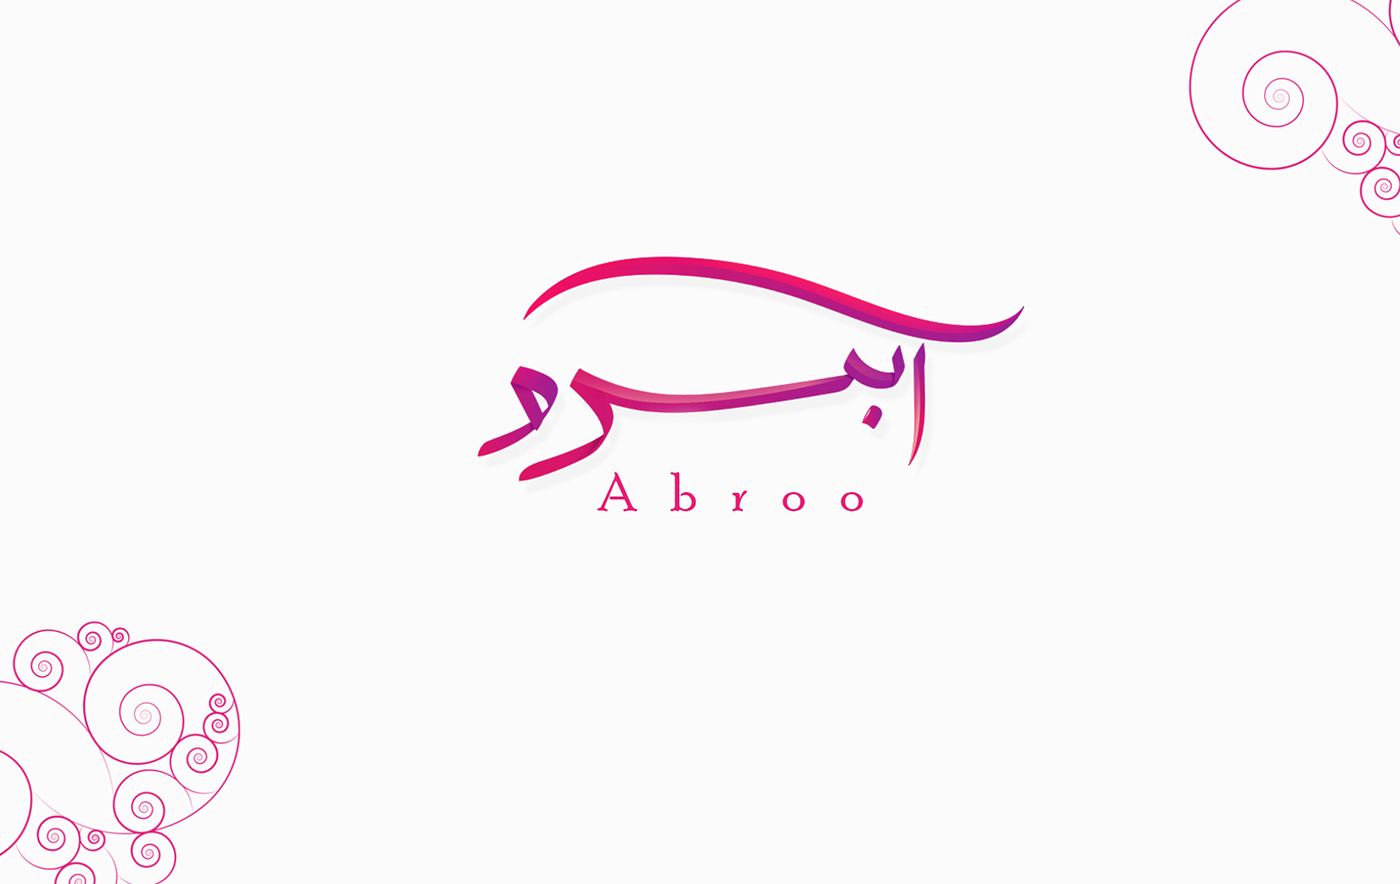 Arabic Name Logo Design Free PSD on Behance